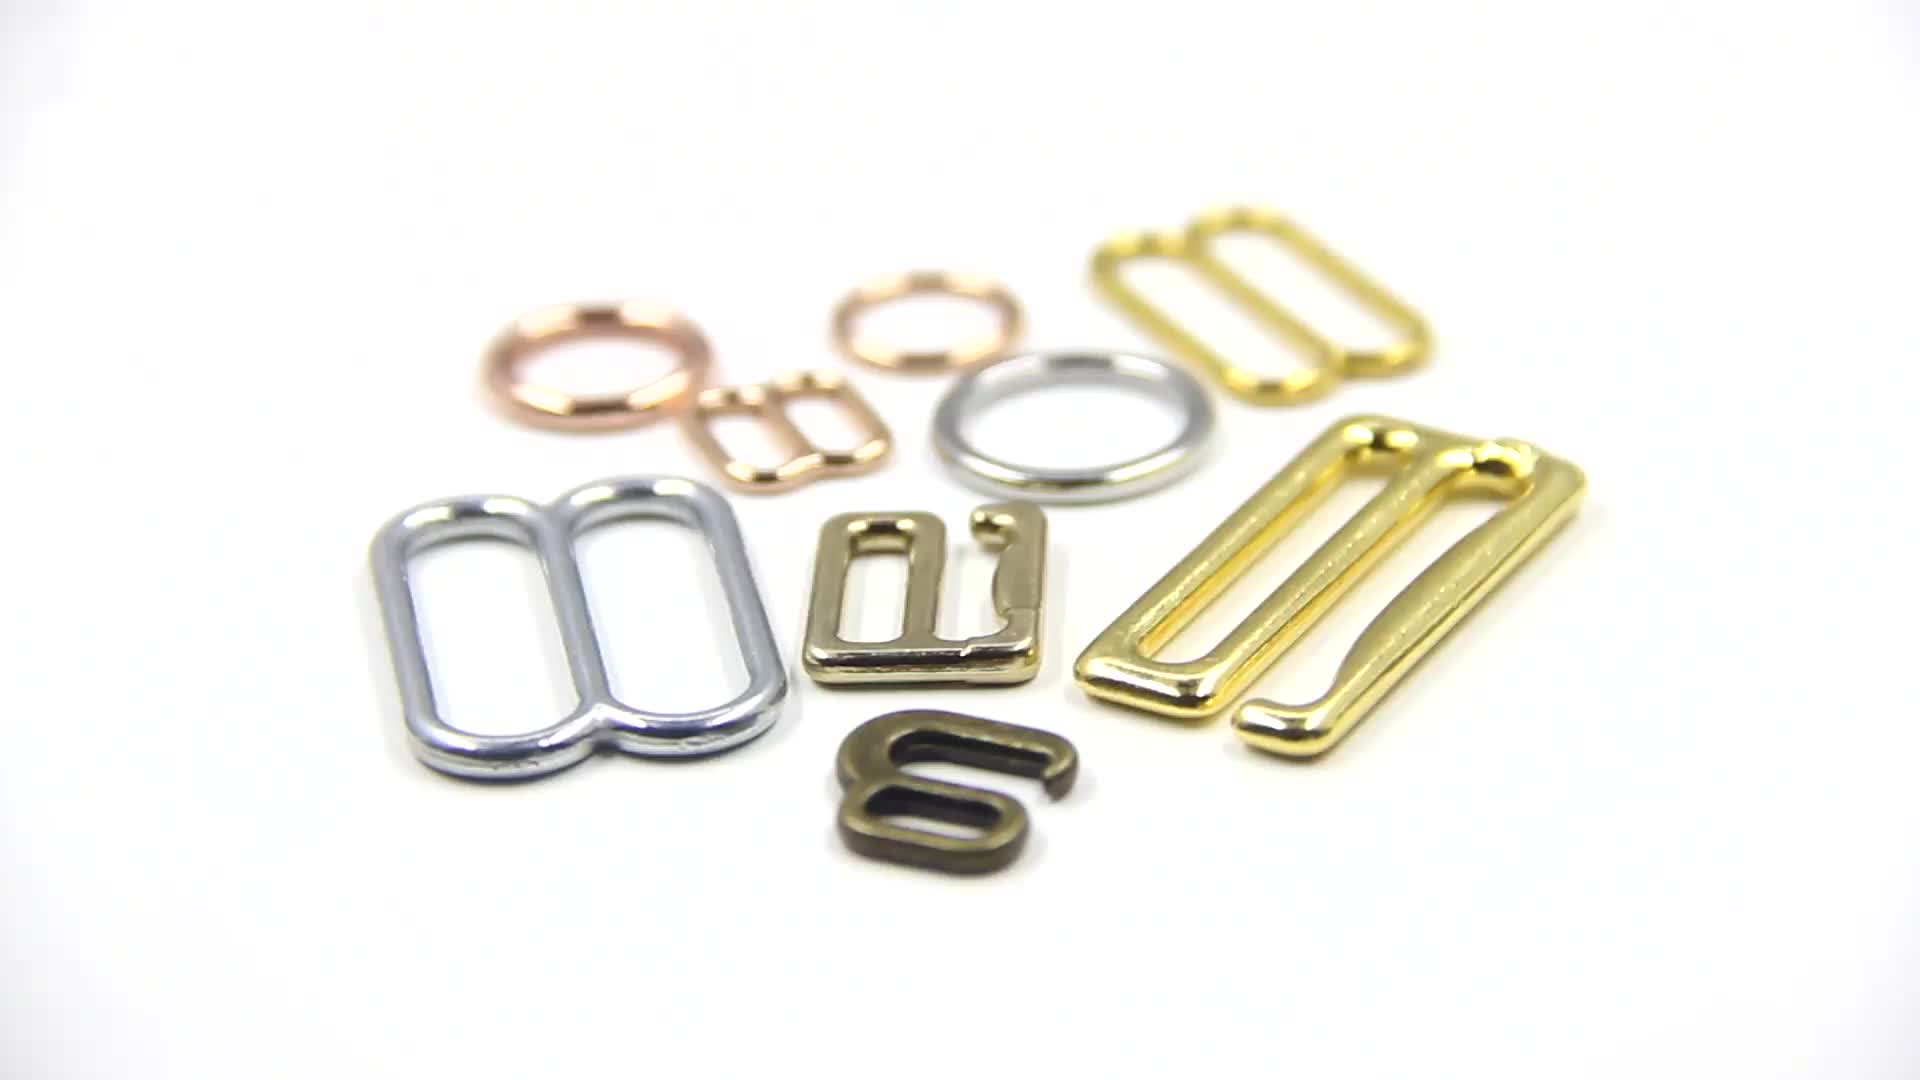 Wholesale ECO-Friendly Nick-Free Gold Plated Metal Swimwear Buckles 6mm Bra Ring And Strap Adjuster Slider